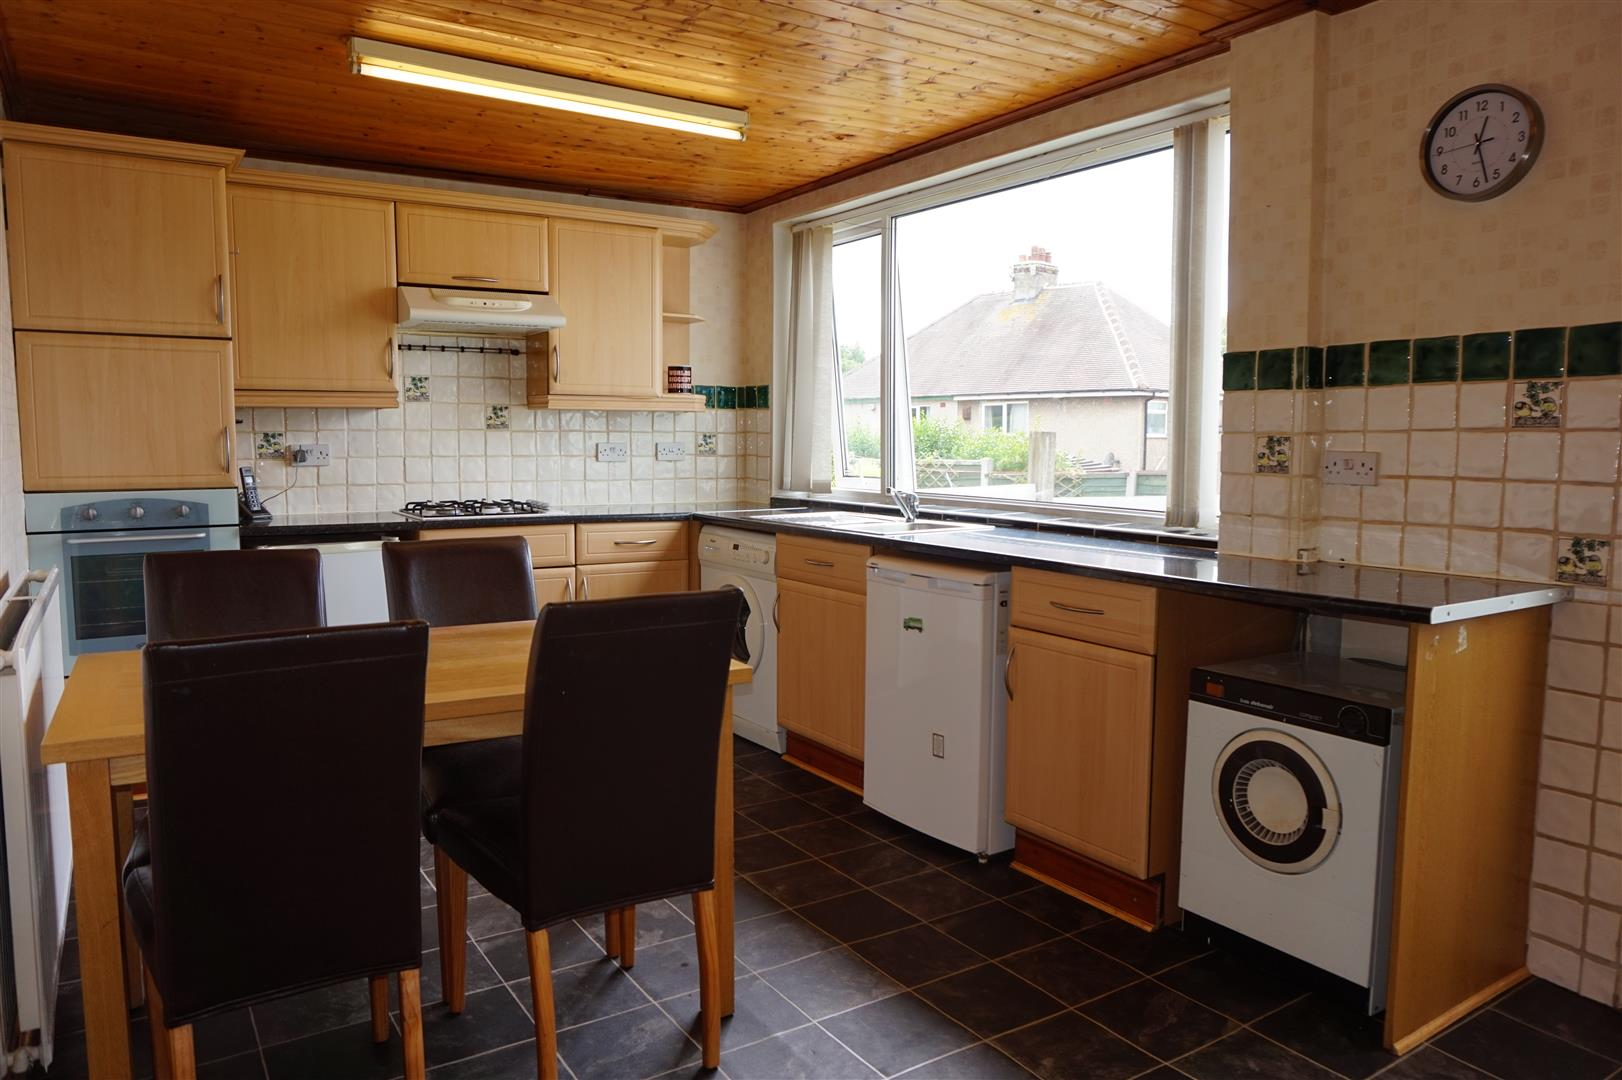 summersgill road lancaster 3 bed type unknown la1 2rt On f kitchen lancaster